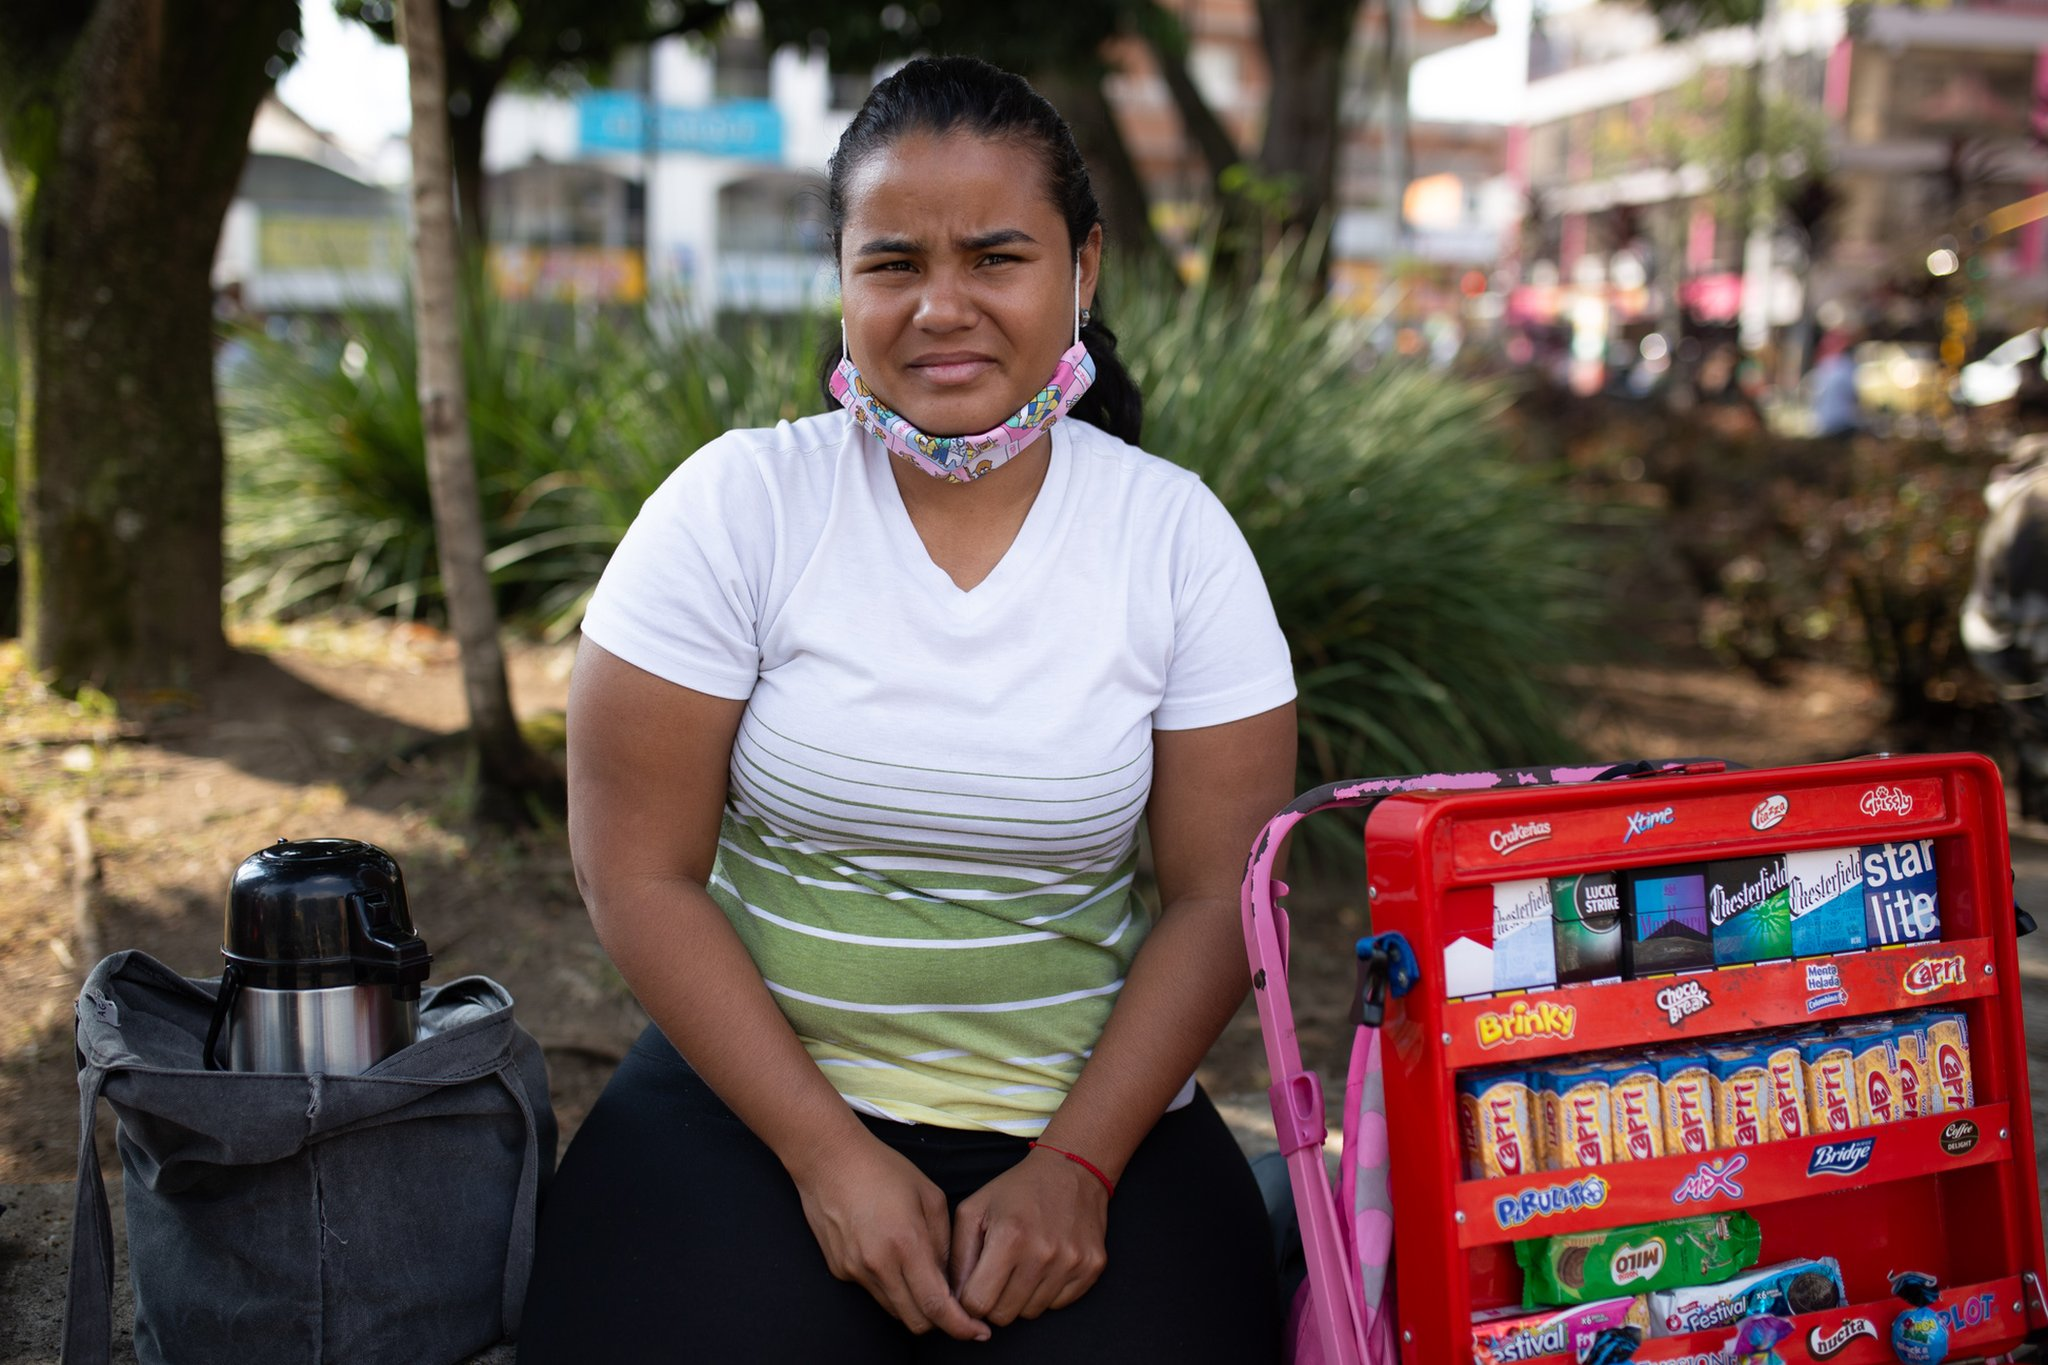 Danexi Andrade selling sweets in Medellin